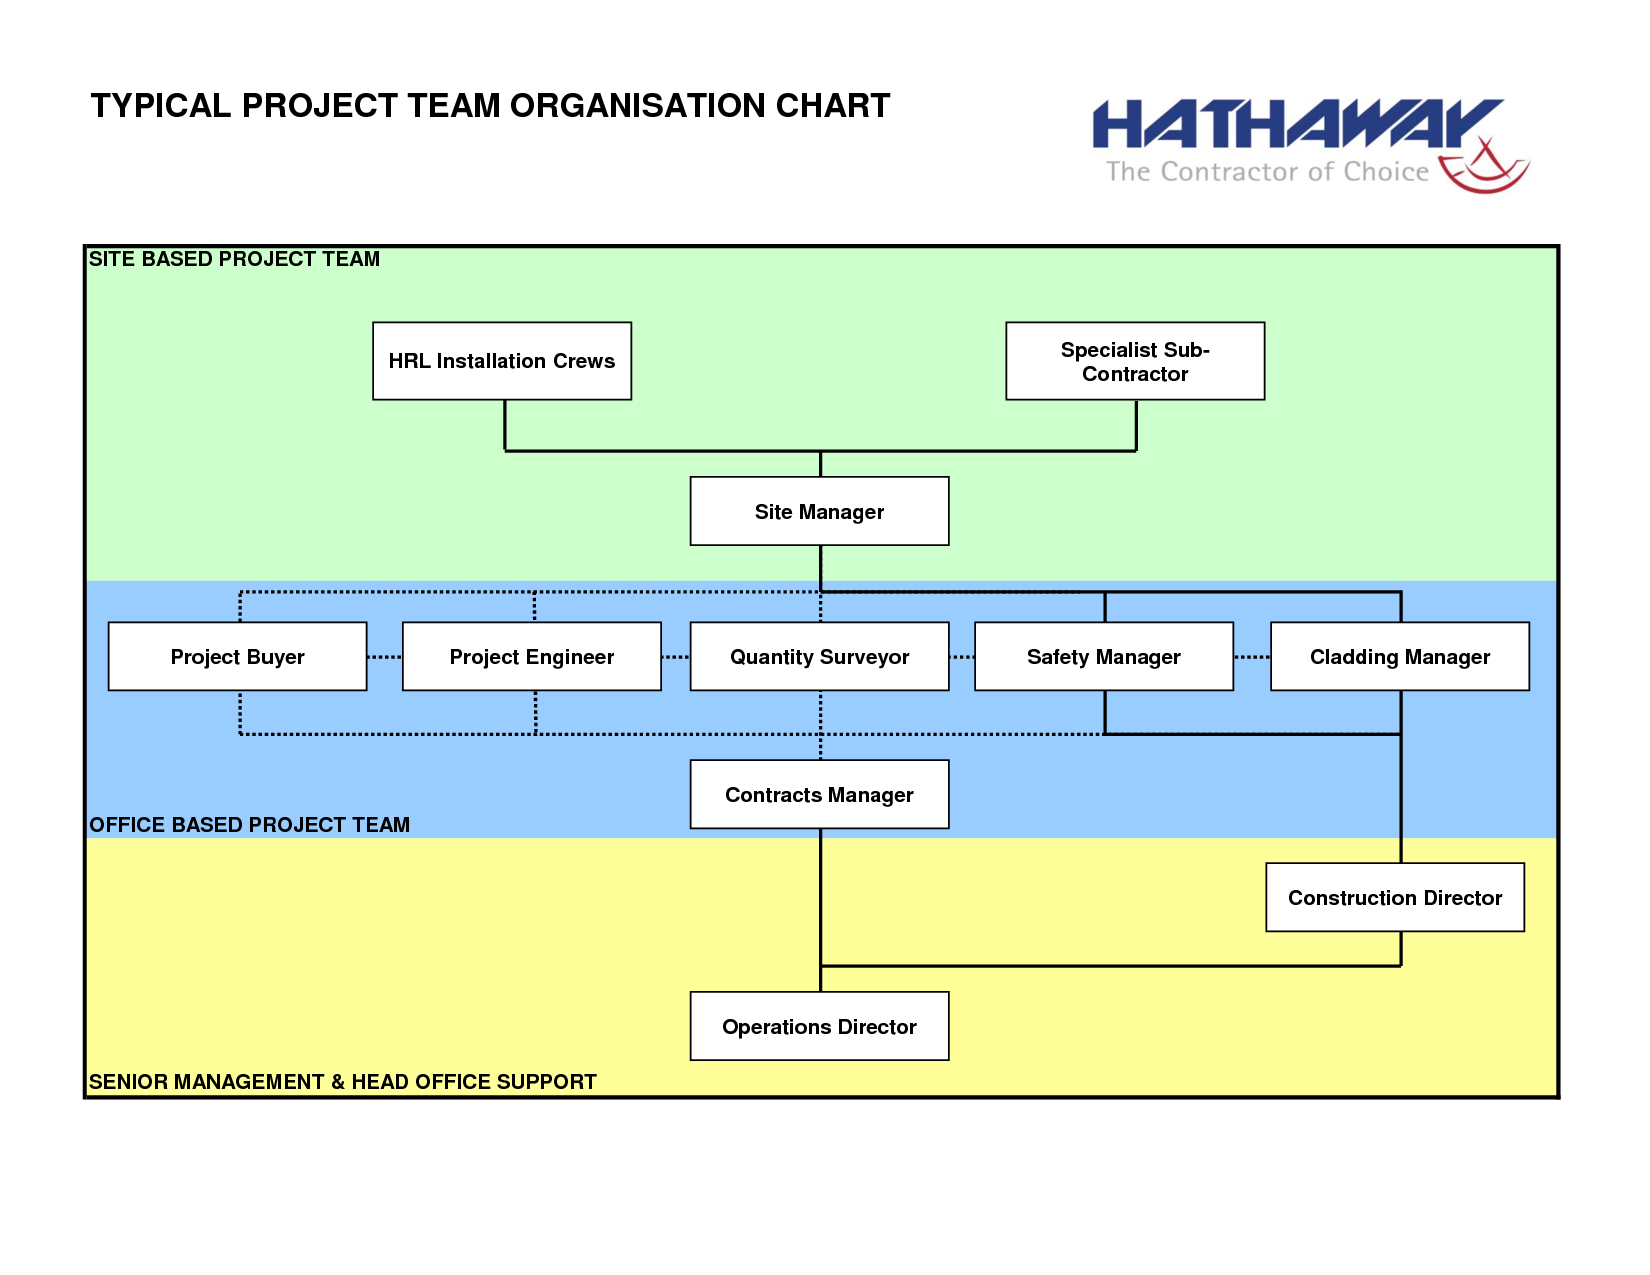 project management office structure diagram dcc bus wiring diagrams construction organizational chart template